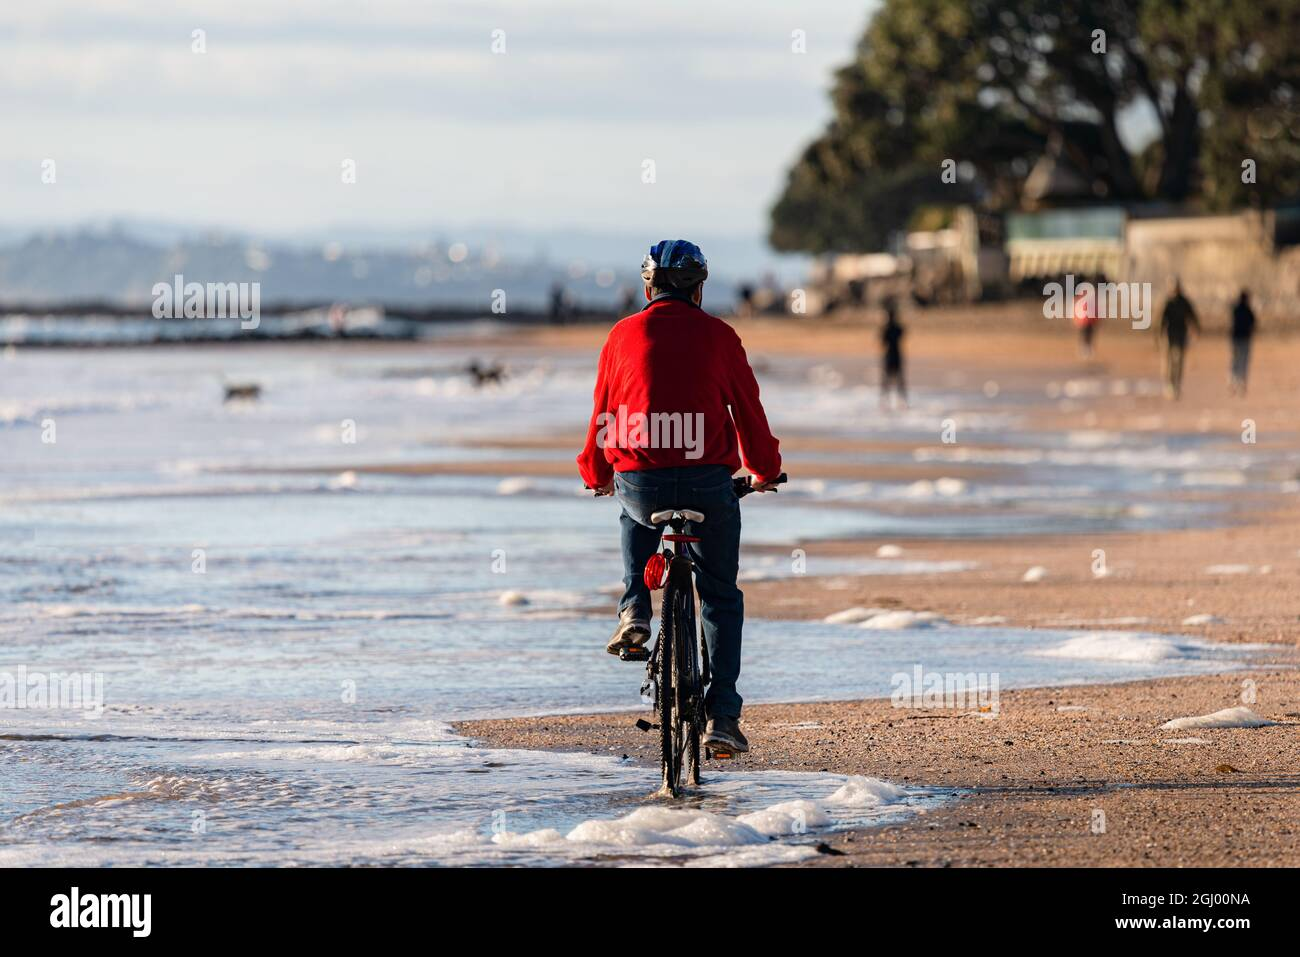 A cyclist riding along Milford beach in Auckland, with out-of-focus people walking and dogs playing on the beach. Stock Photo